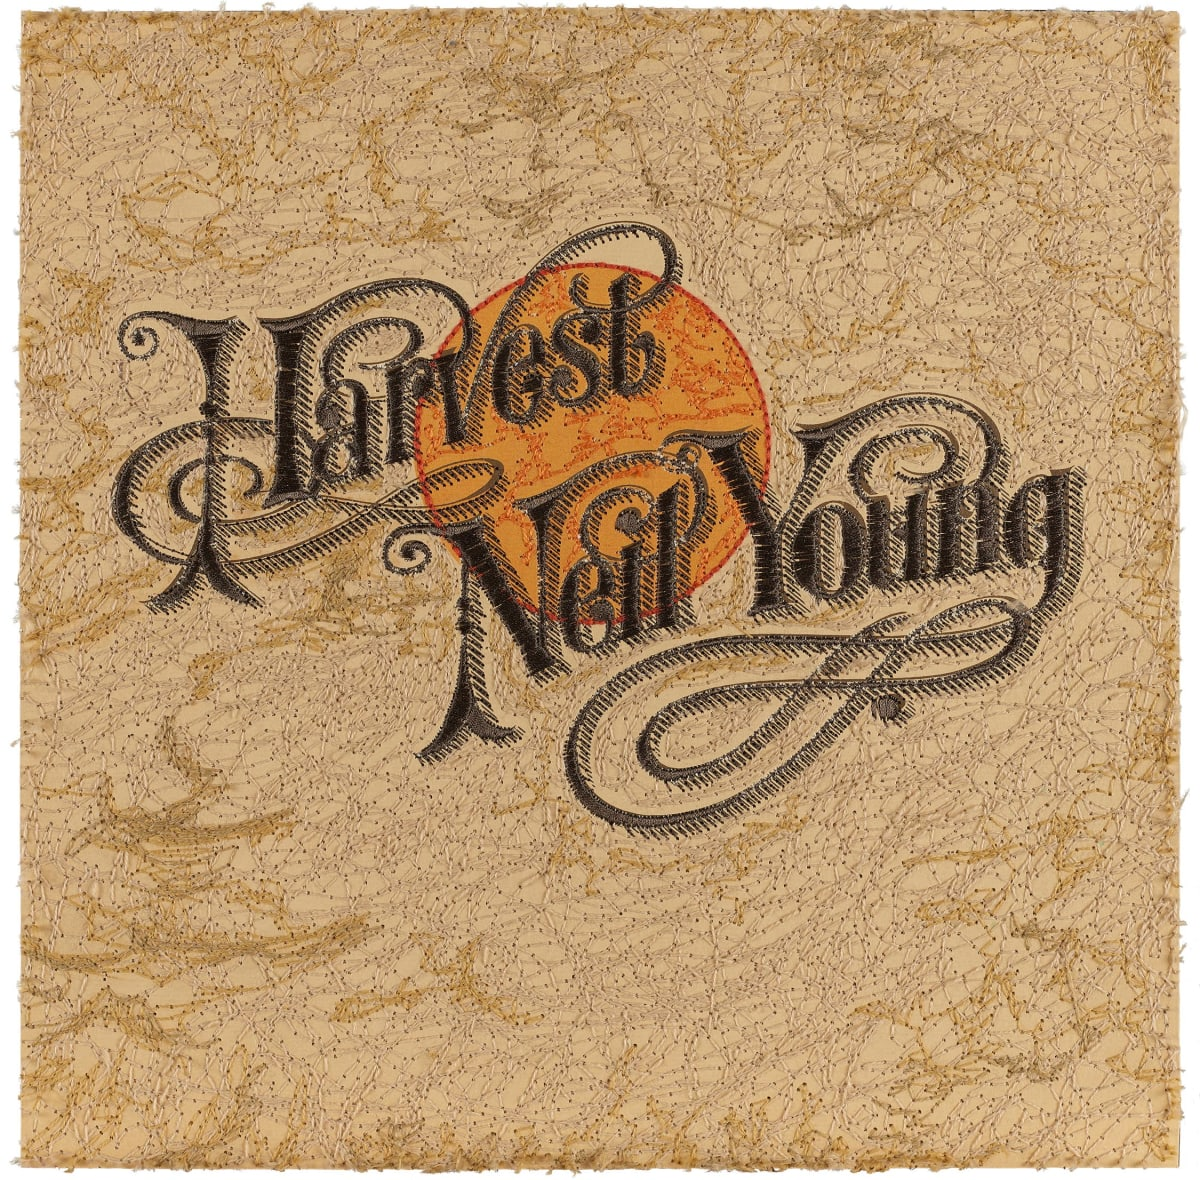 Stephen Wilson, Harvest, Neil Young , 2019